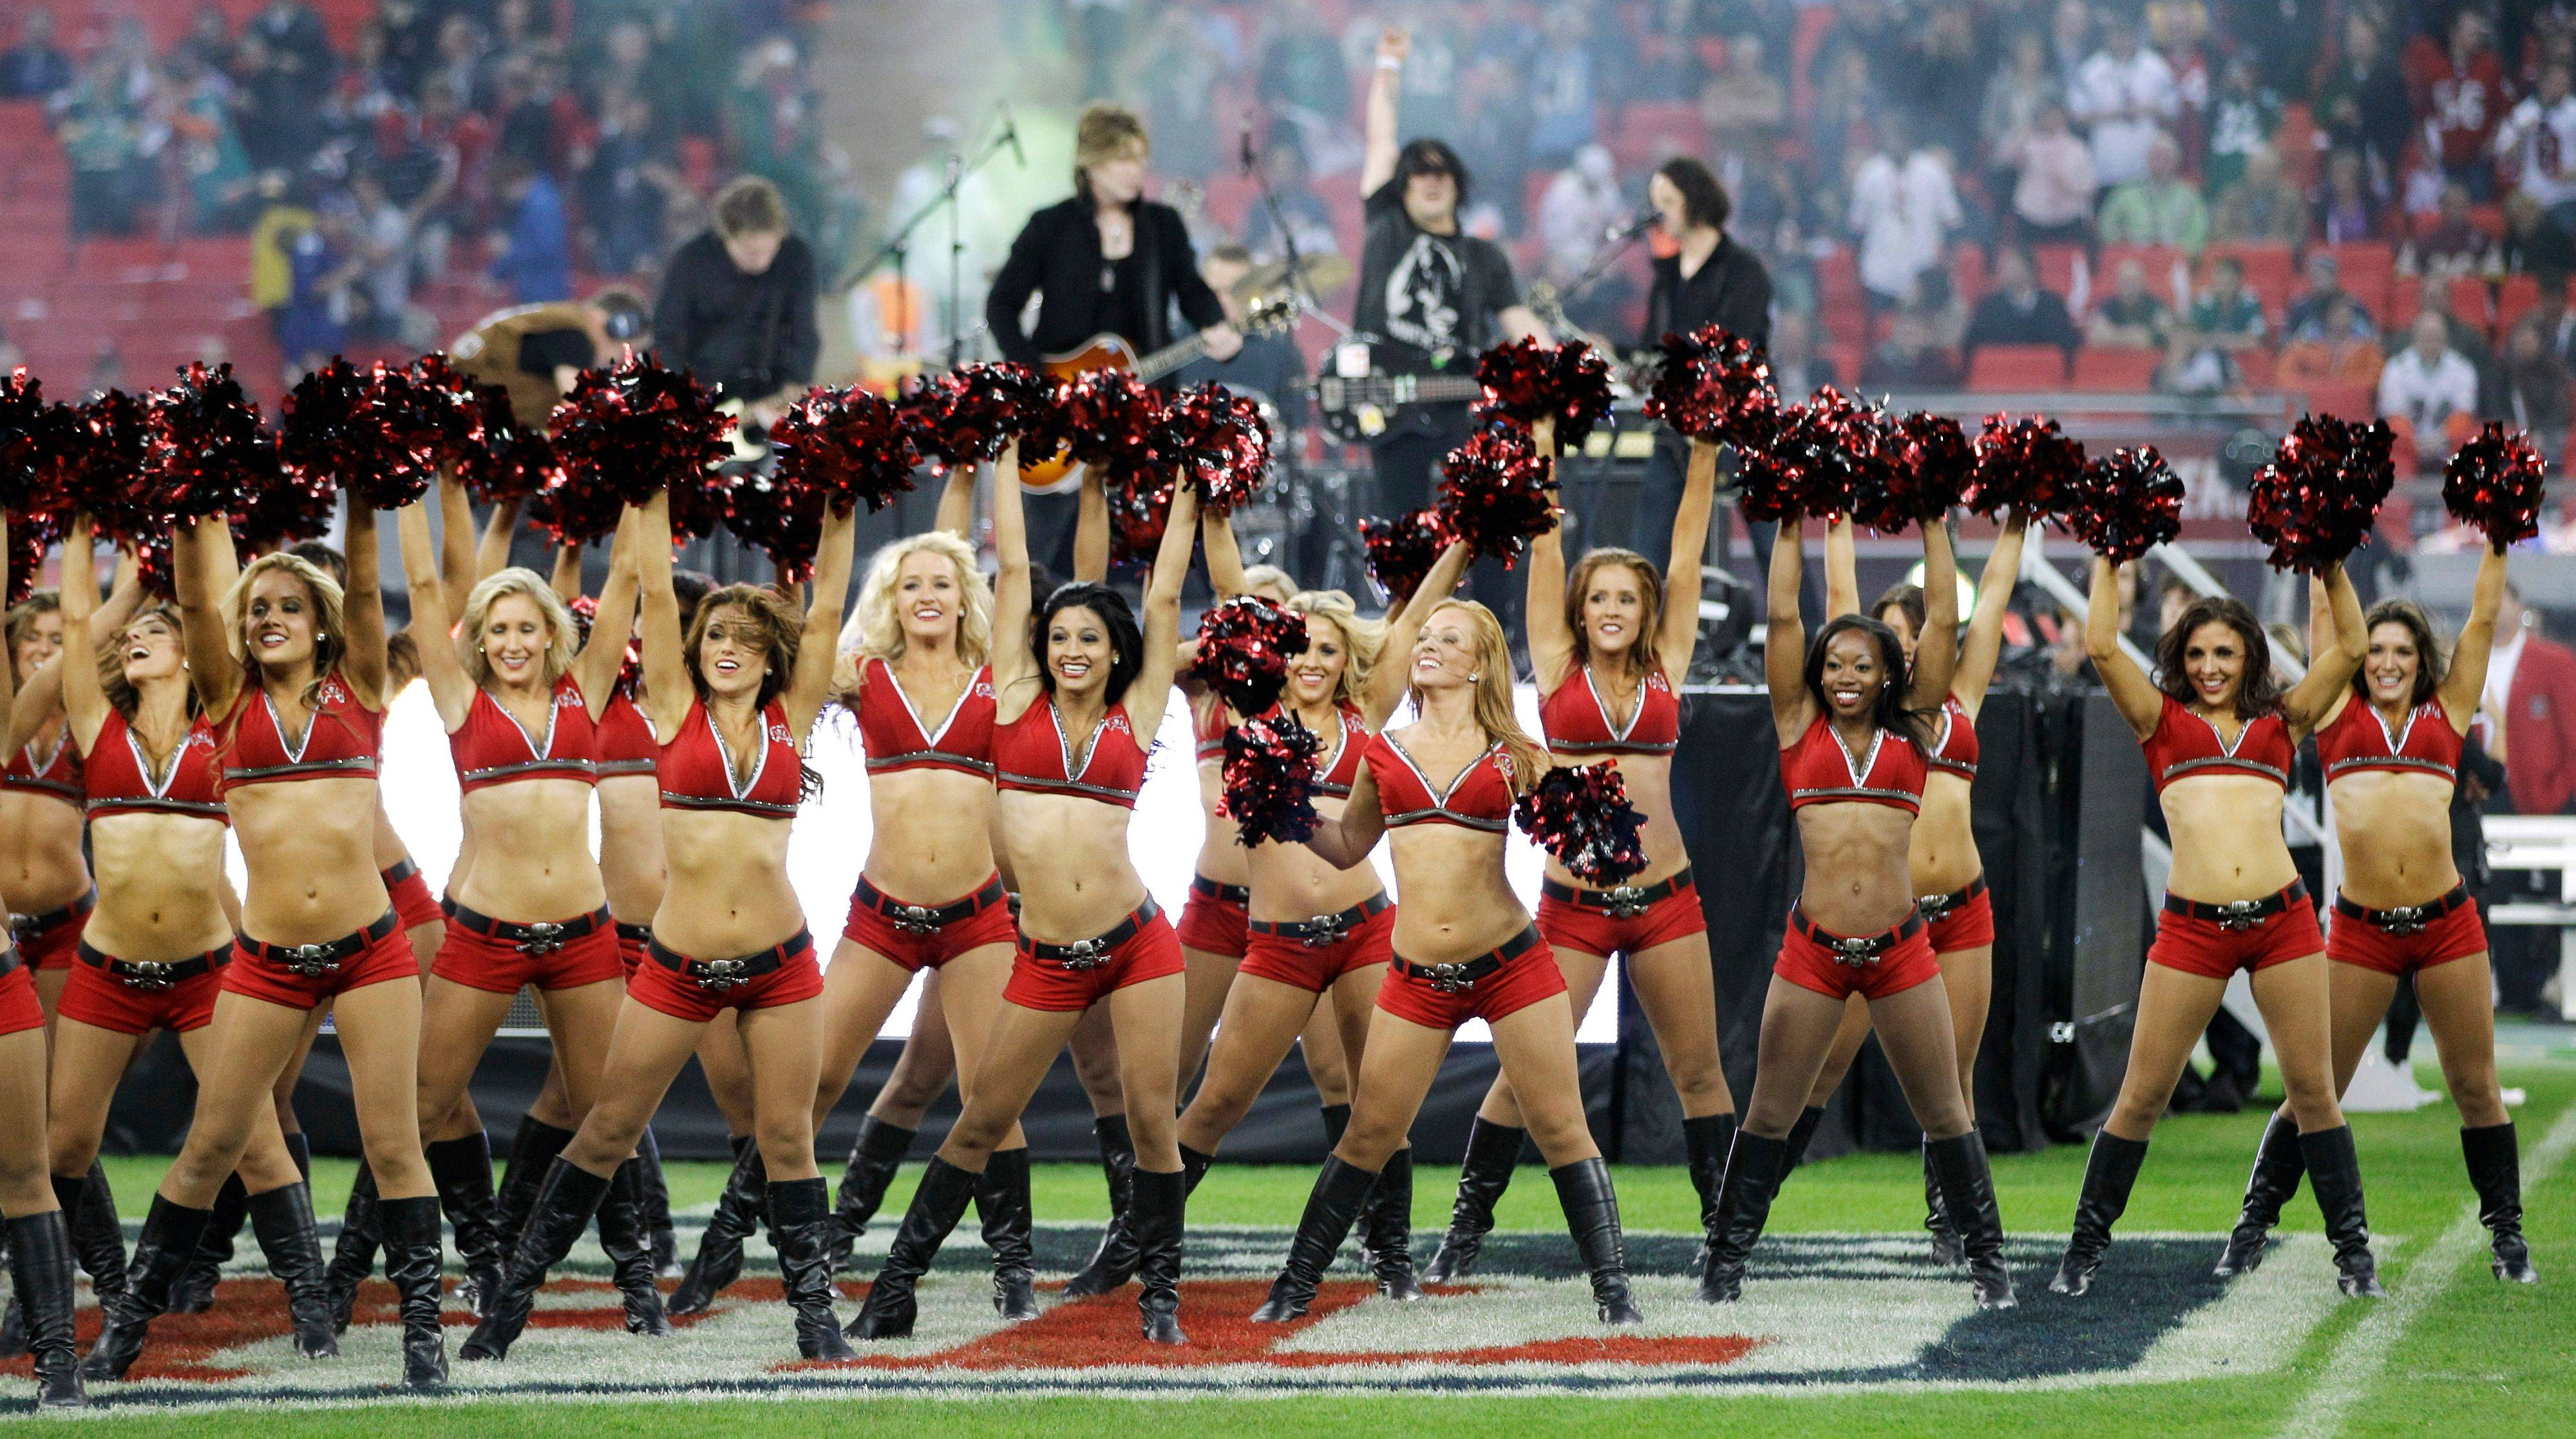 Tampa Bay Buccaneers cheerleaders perform in front of the Goo Good Dolls during the first half of an NFL football game between the Tampa Bay Buccaneers and Chicago Bears at Wembley Stadium in London.